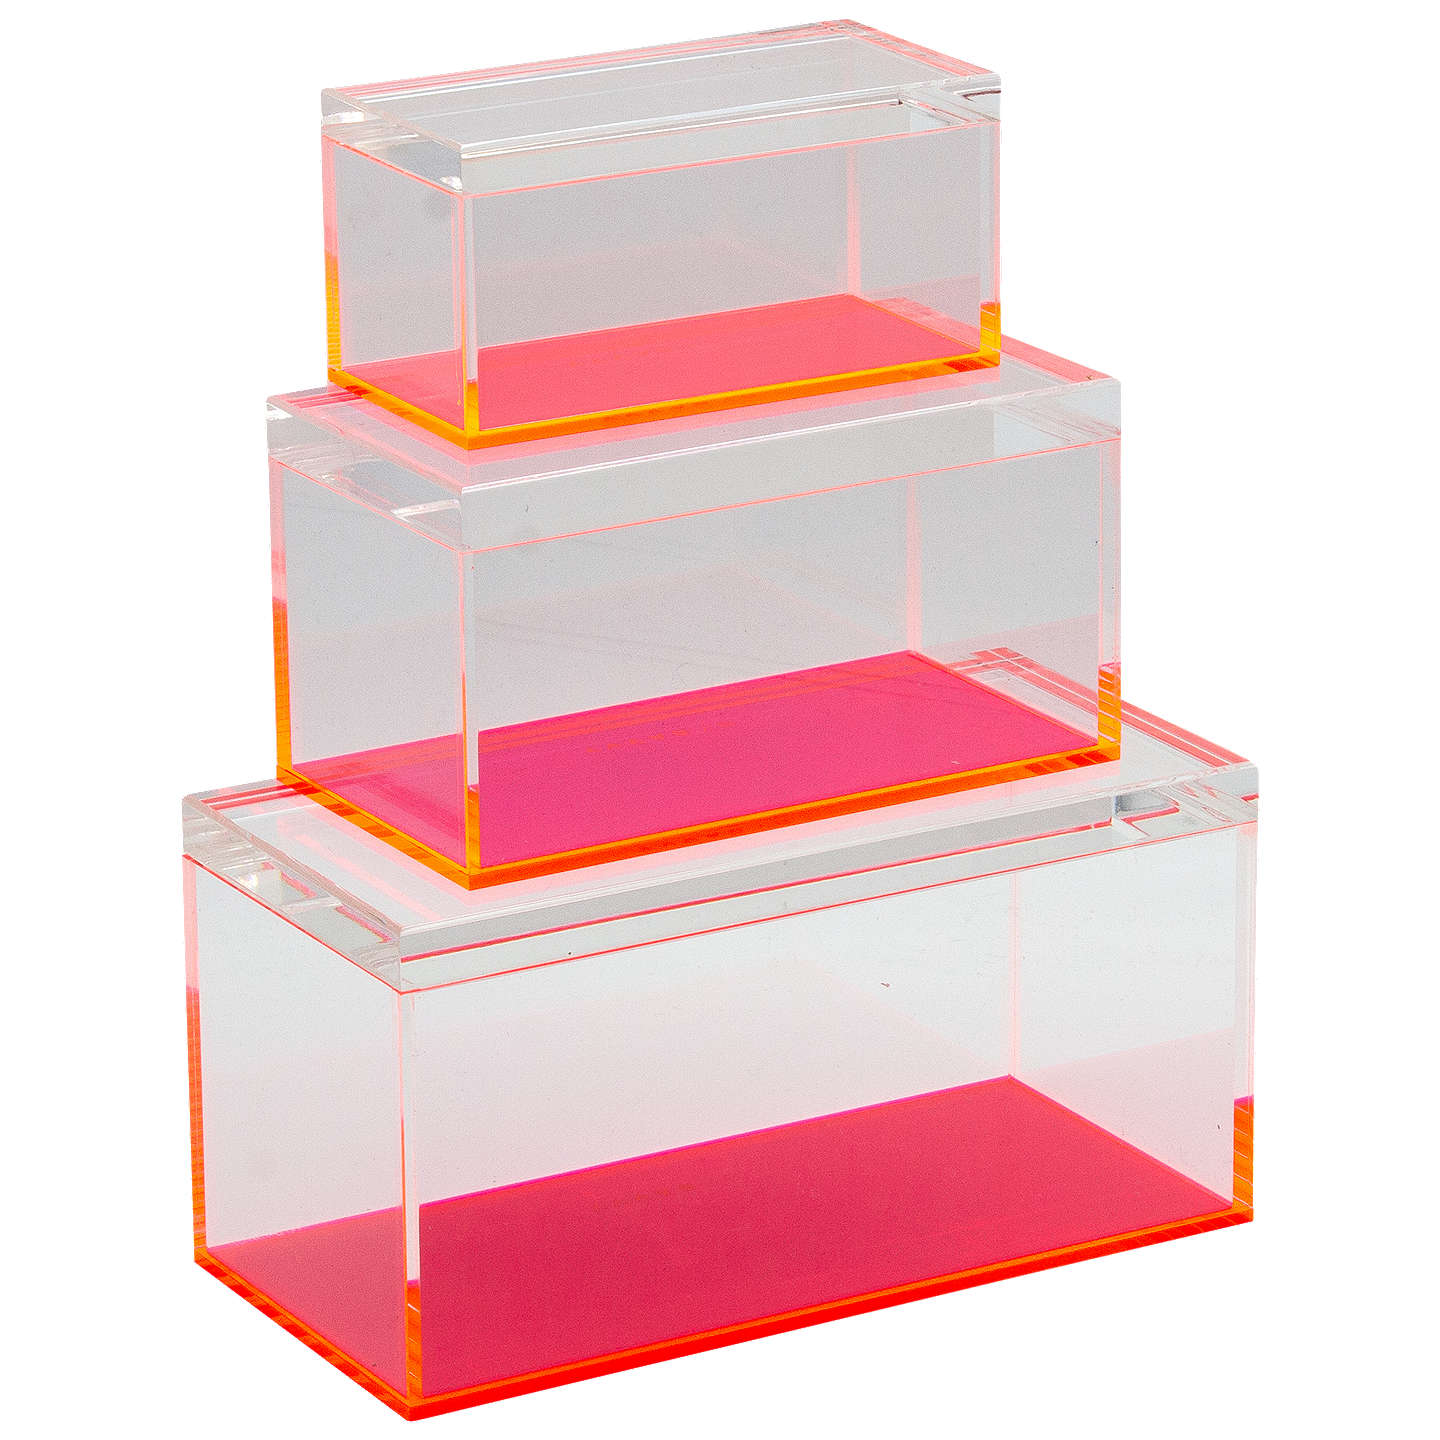 BuyLund London Acrylic Storage Box Set Pack of 3 Online at johnlewis.com ...  sc 1 st  John Lewis & Lund London Acrylic Storage Box Set Pack of 3 at John Lewis